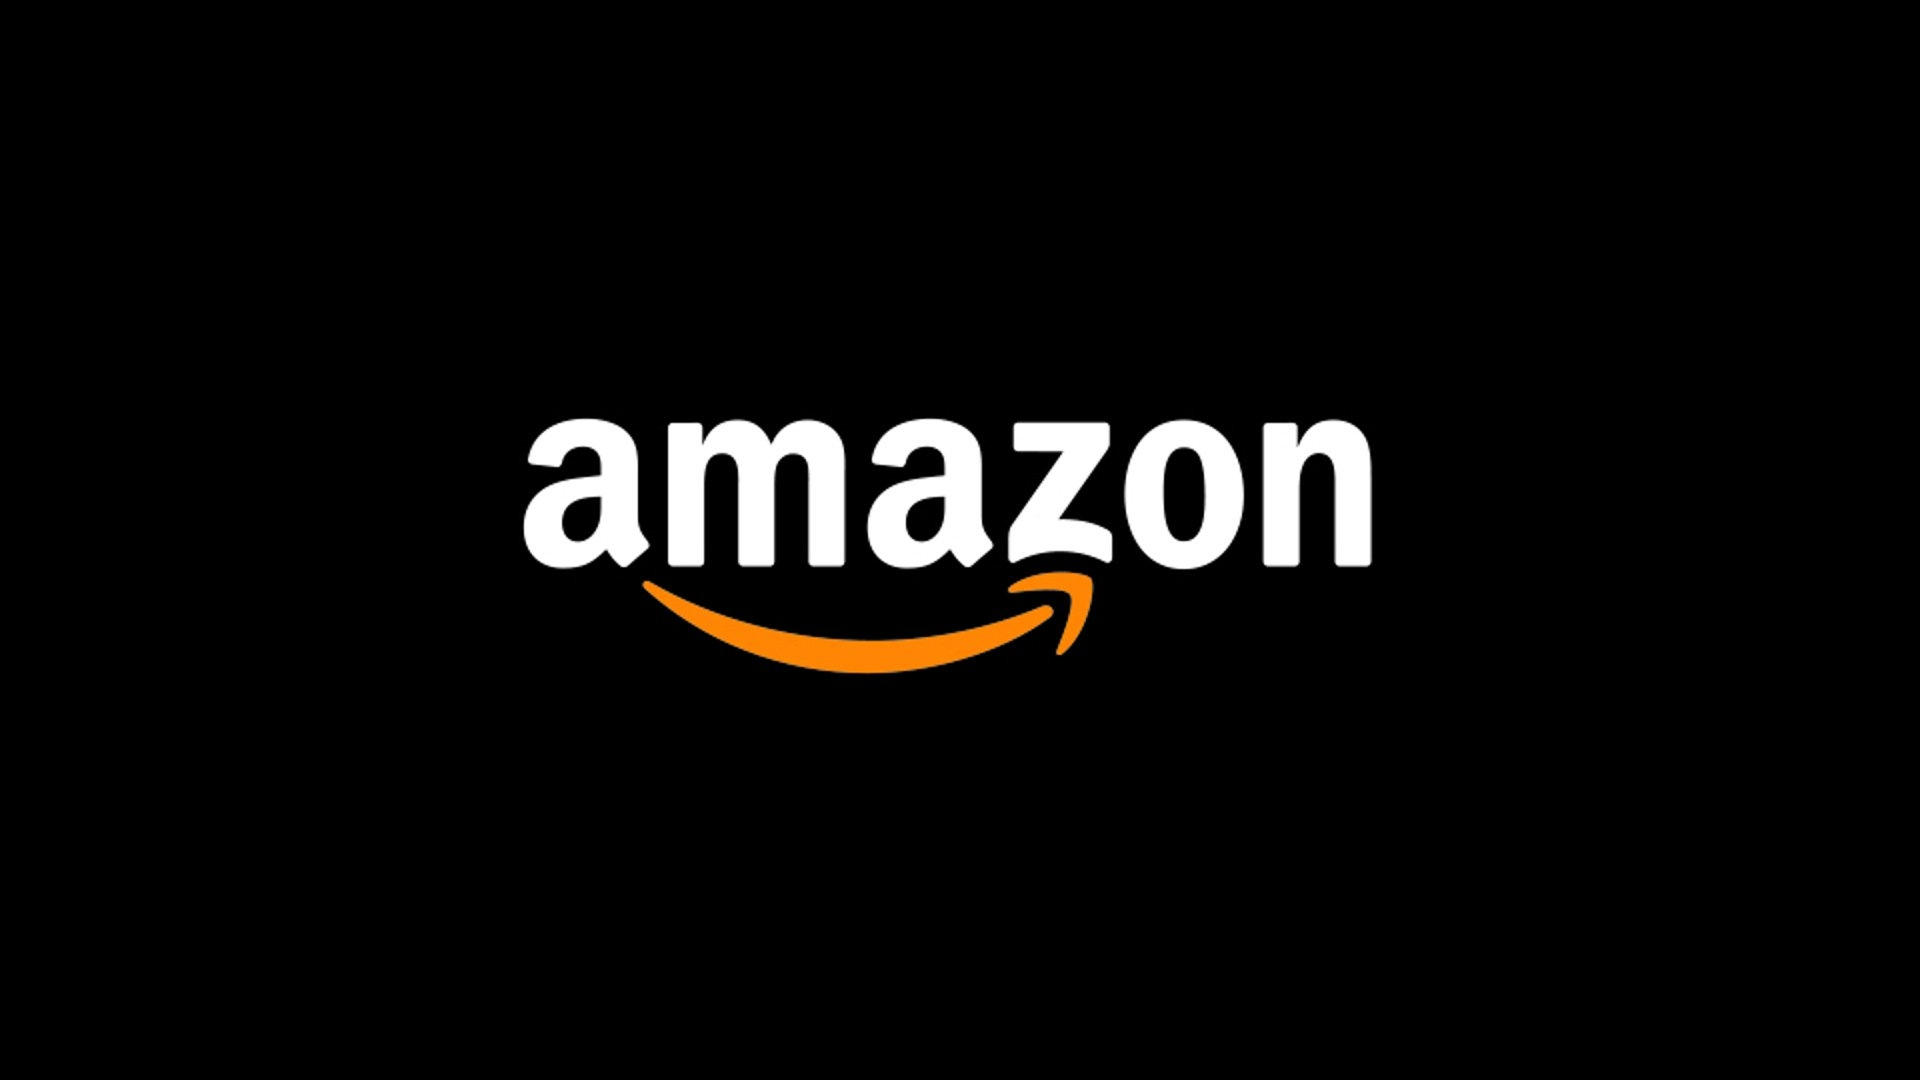 Amazon-B07B8K7MFW (@amazon-b07b8k7mfw) Cover Image